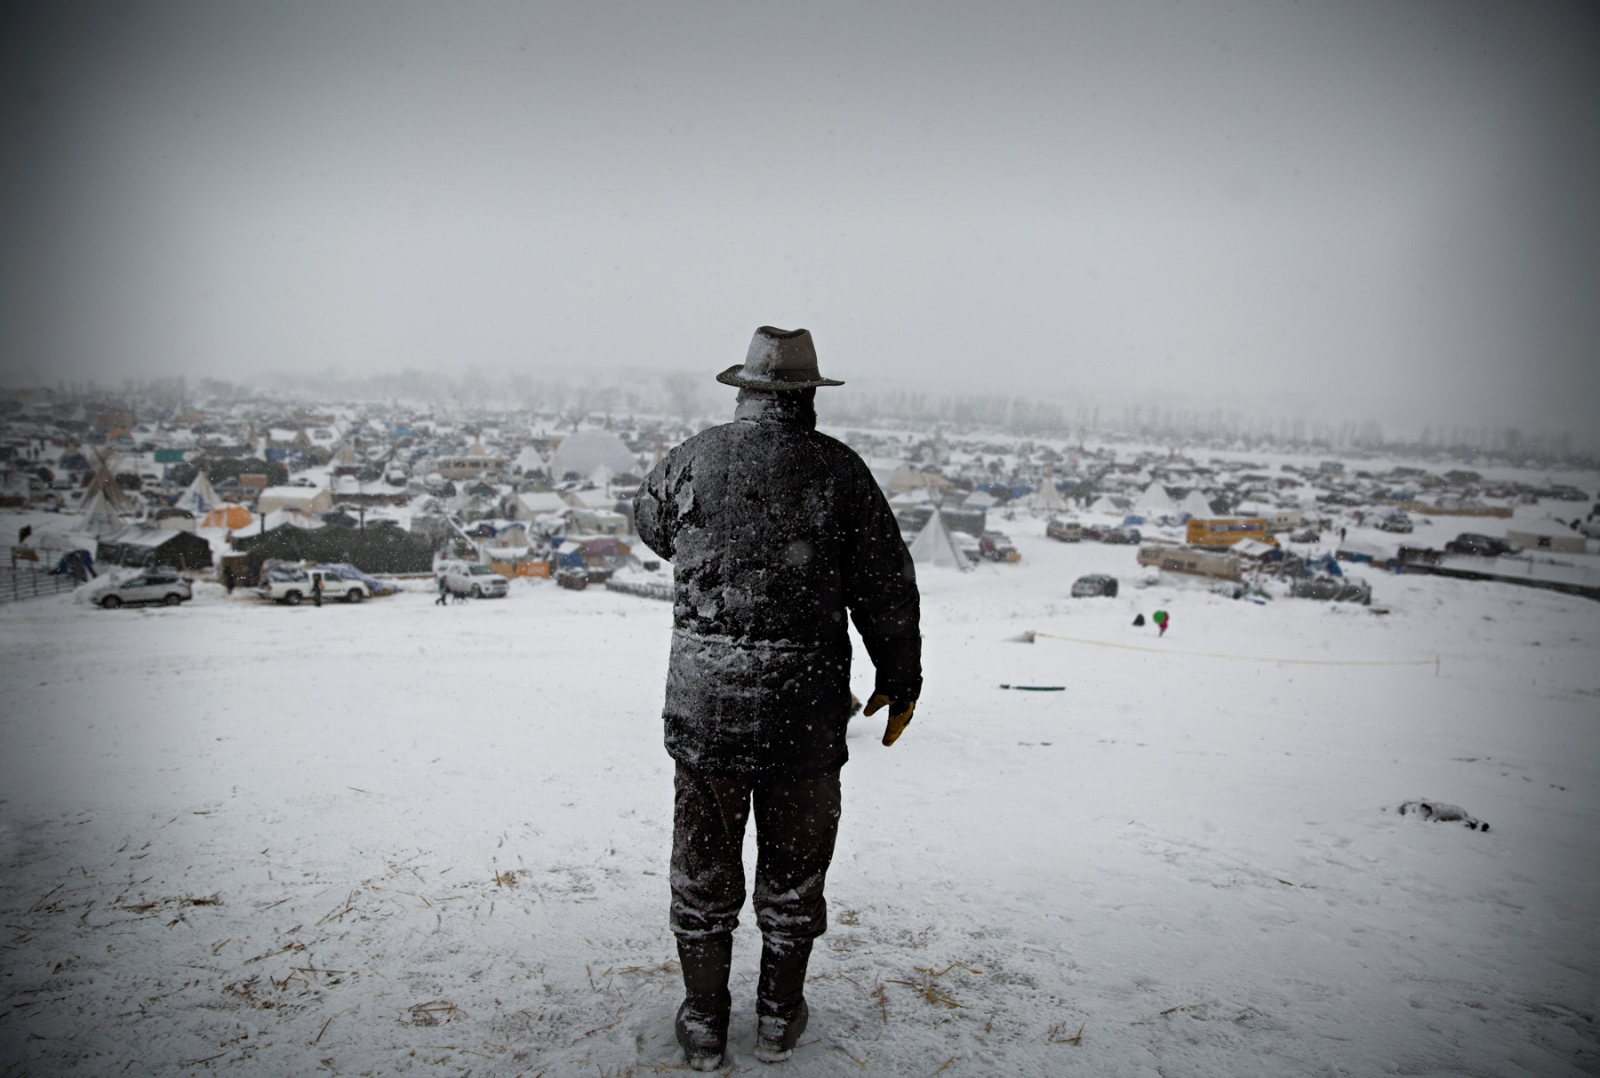 A man overlooks the Camp during a heavy snow blizzard on a December morning when US Military veterans joined the Protectors at the Oceti Sakowin Camp. The veterans had vowed to provide a line of defense against the military style actions of the local and federal law enforcement that had surrounded the Camp.